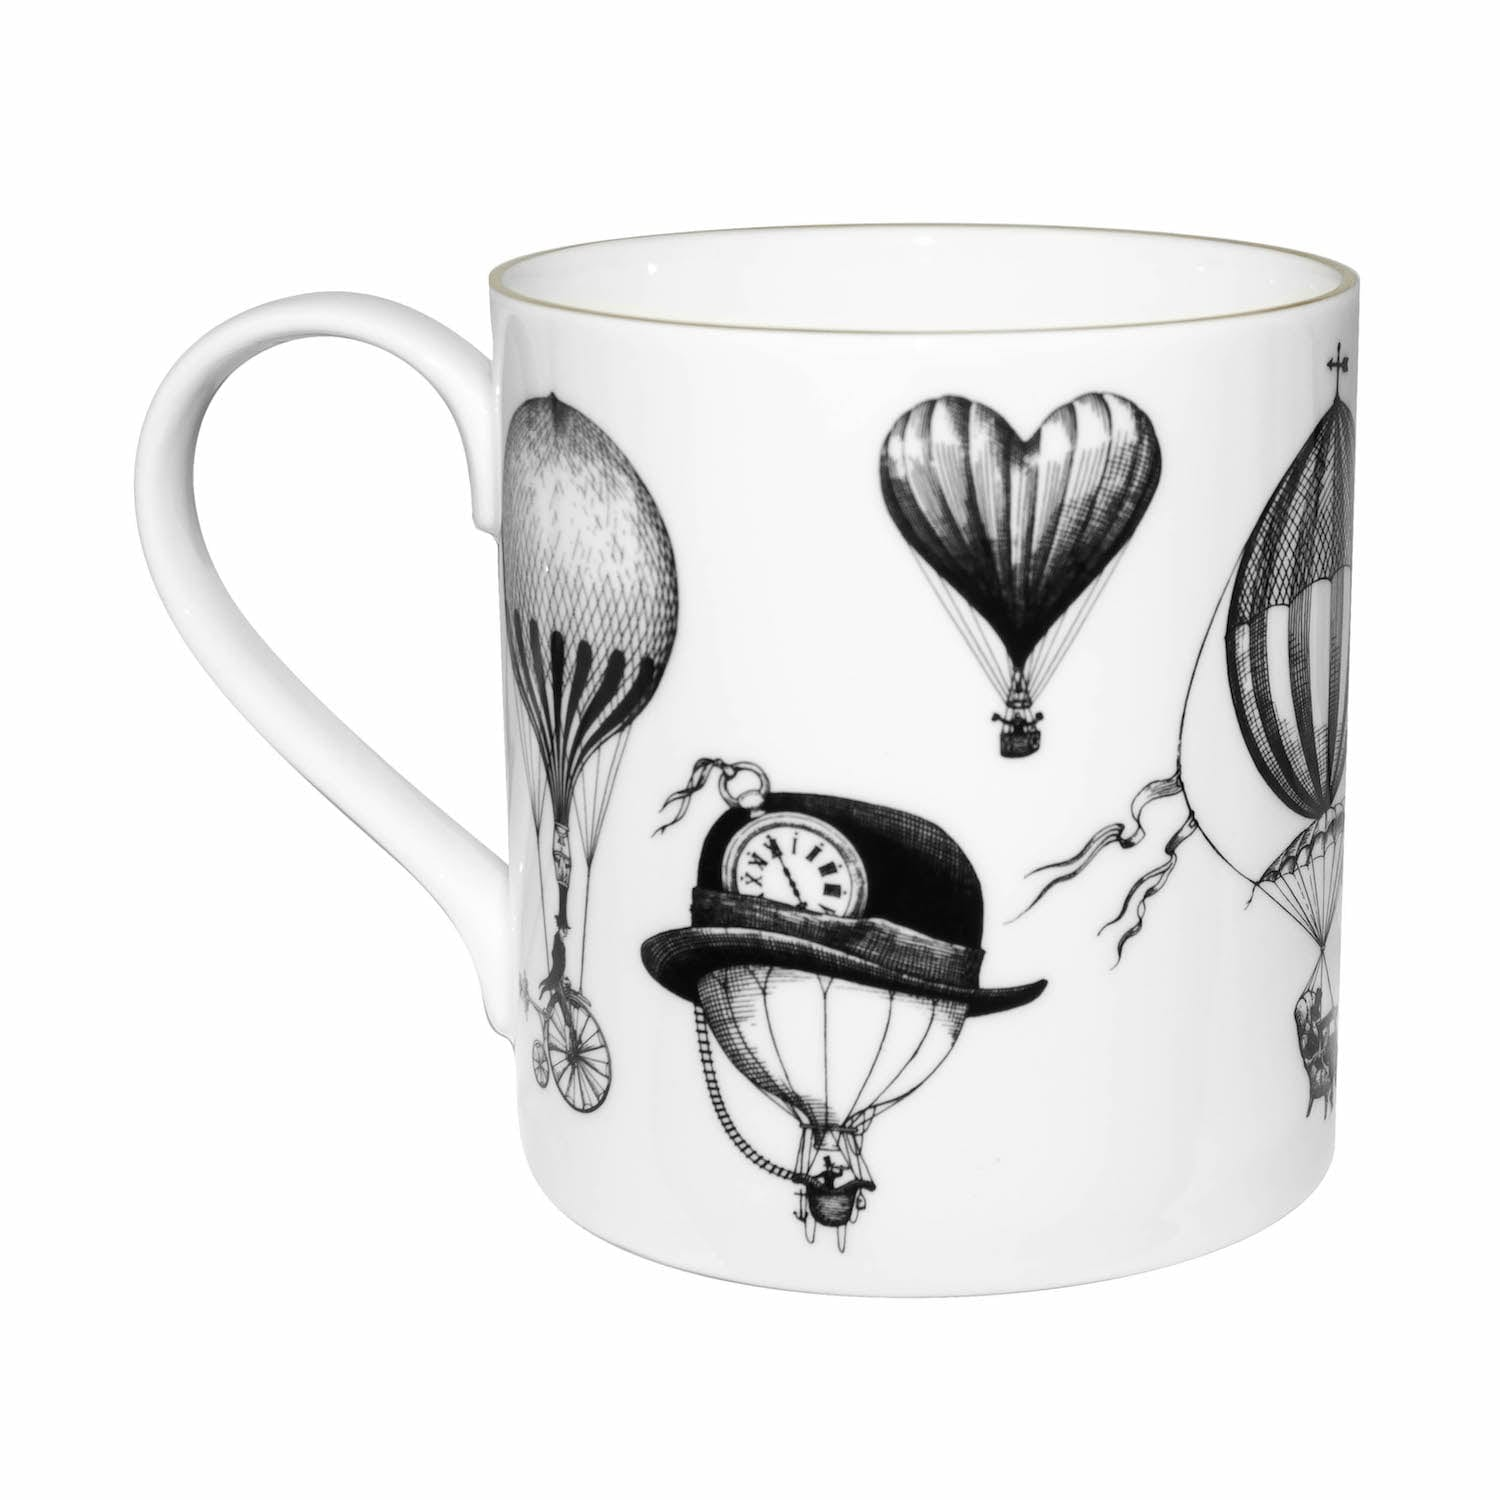 Black and White Balloons design on the mug that made of Fine Bone China